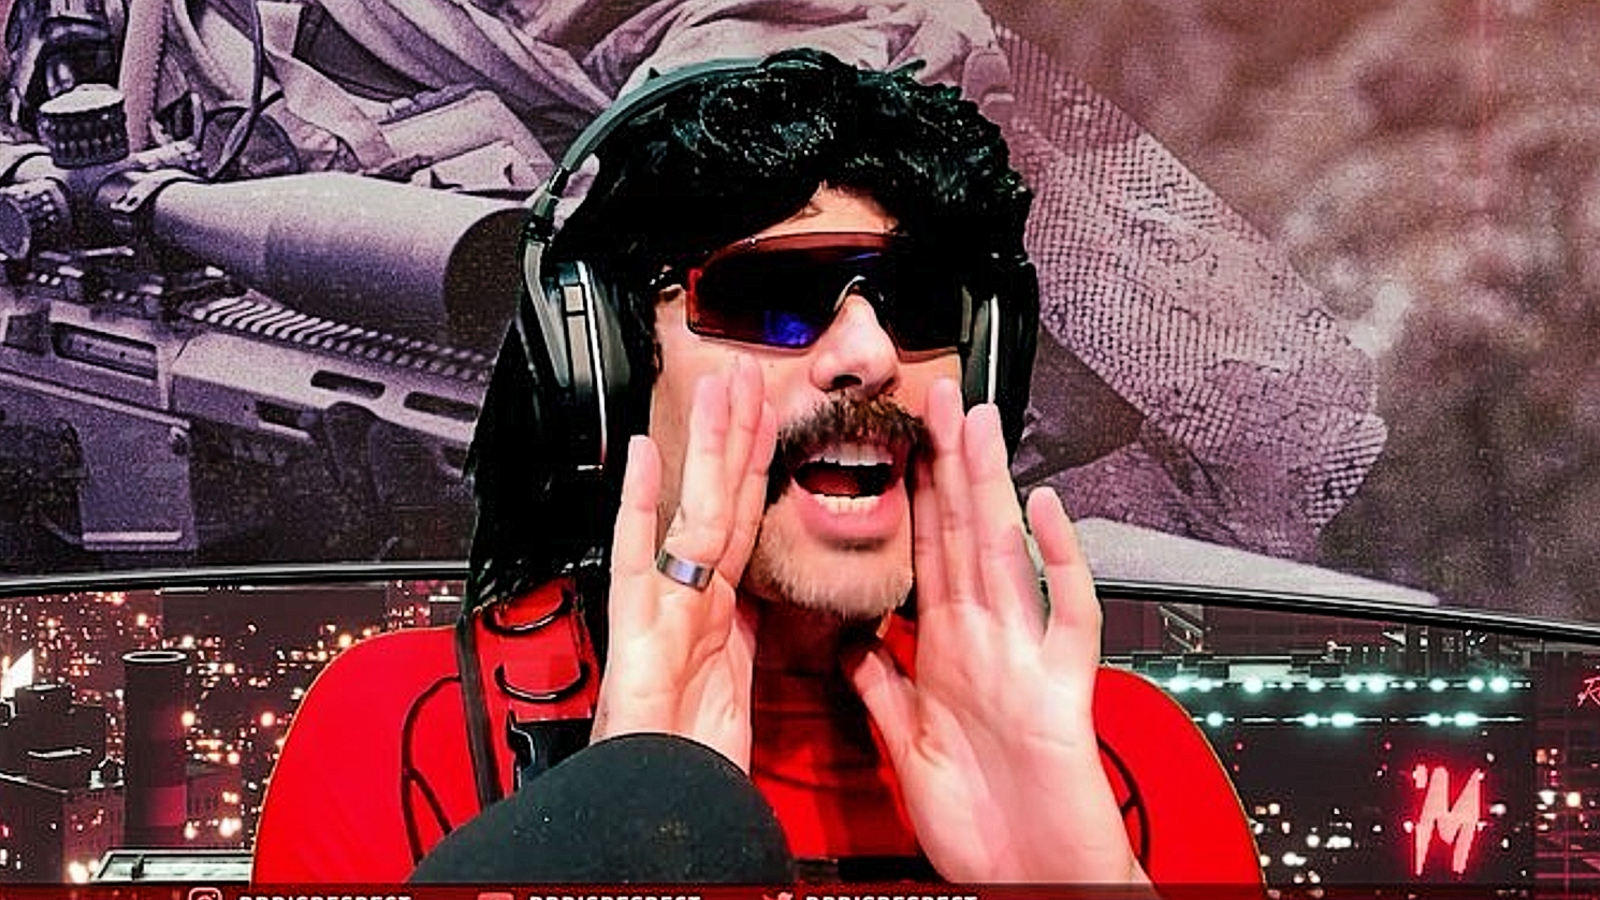 Dr Disrespect roasts fan for small donation